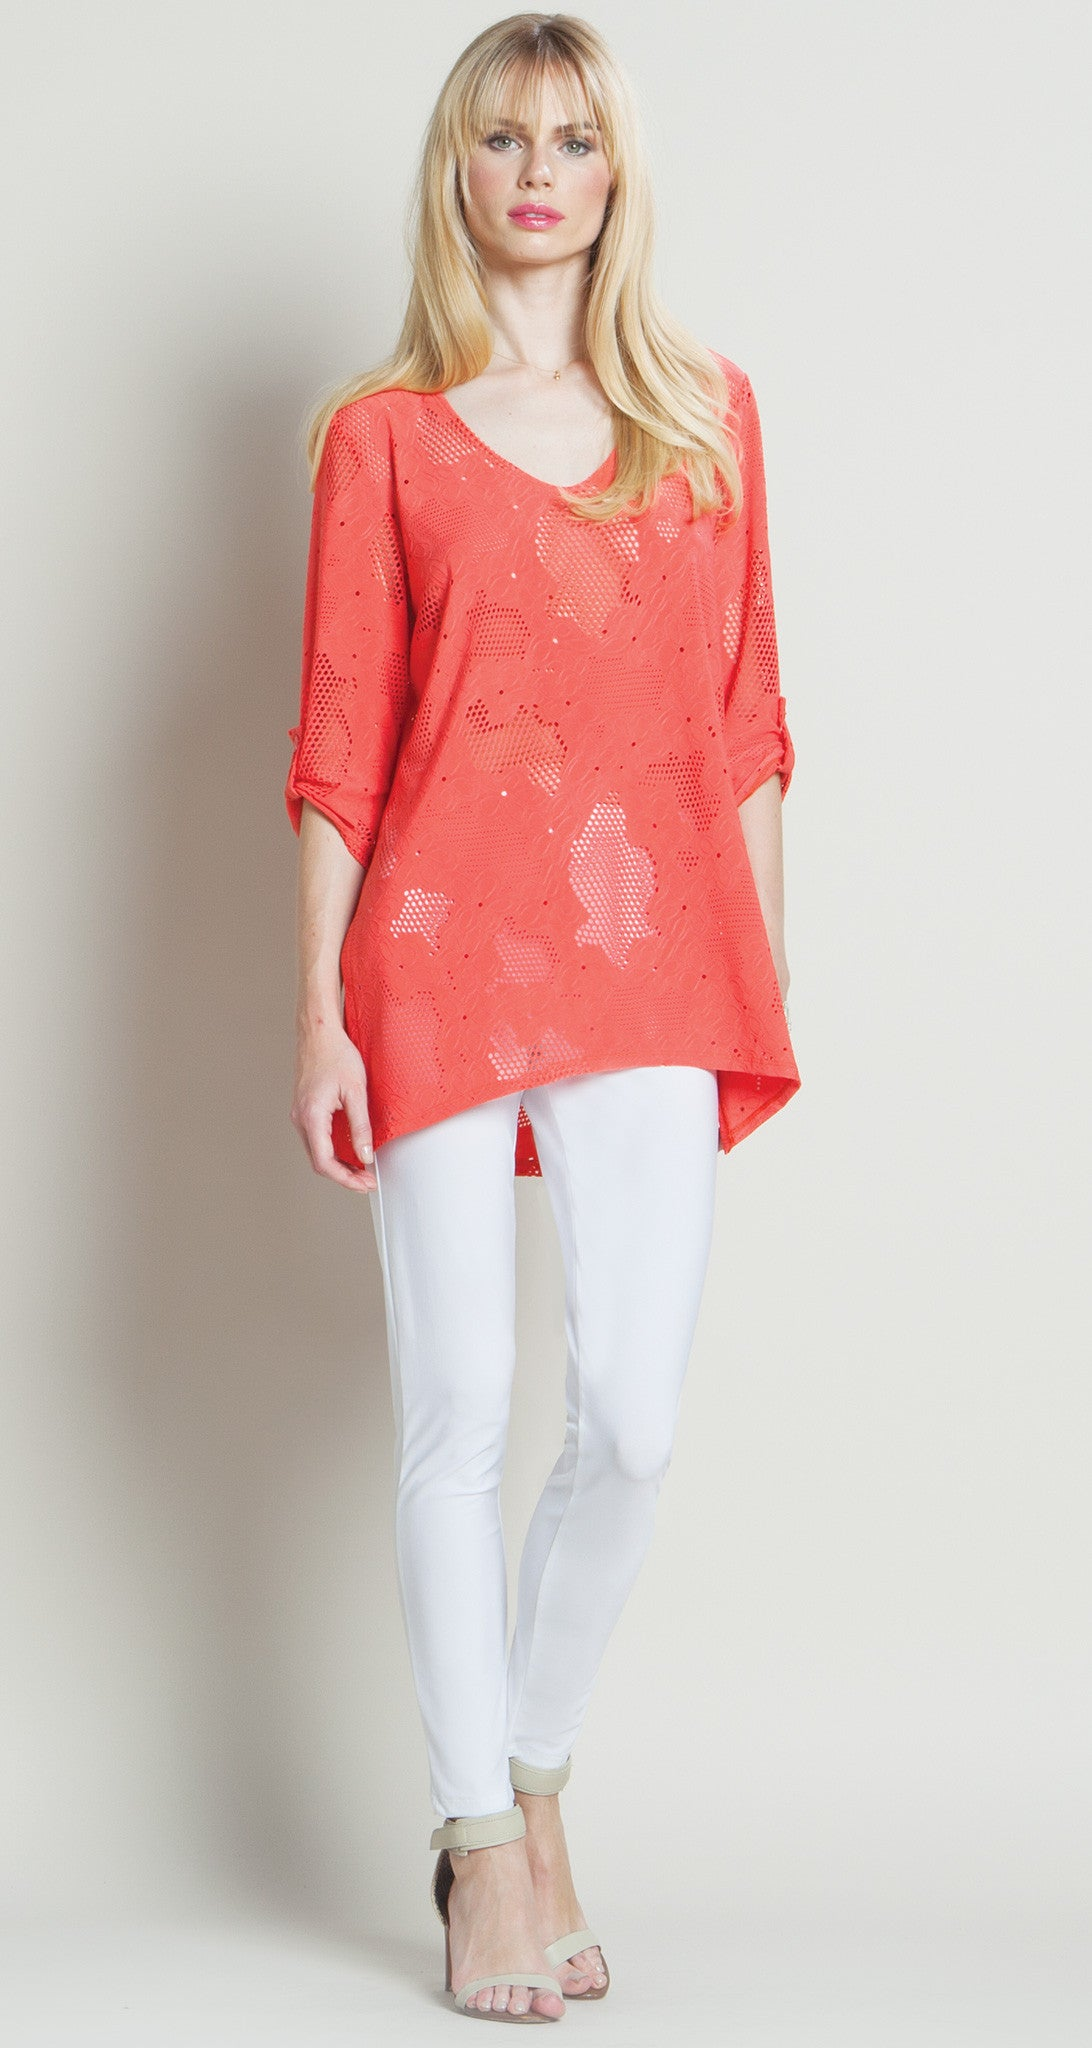 Eyelet V-Neck Tunic - Coral - Final Sale! - Clara Sunwoo